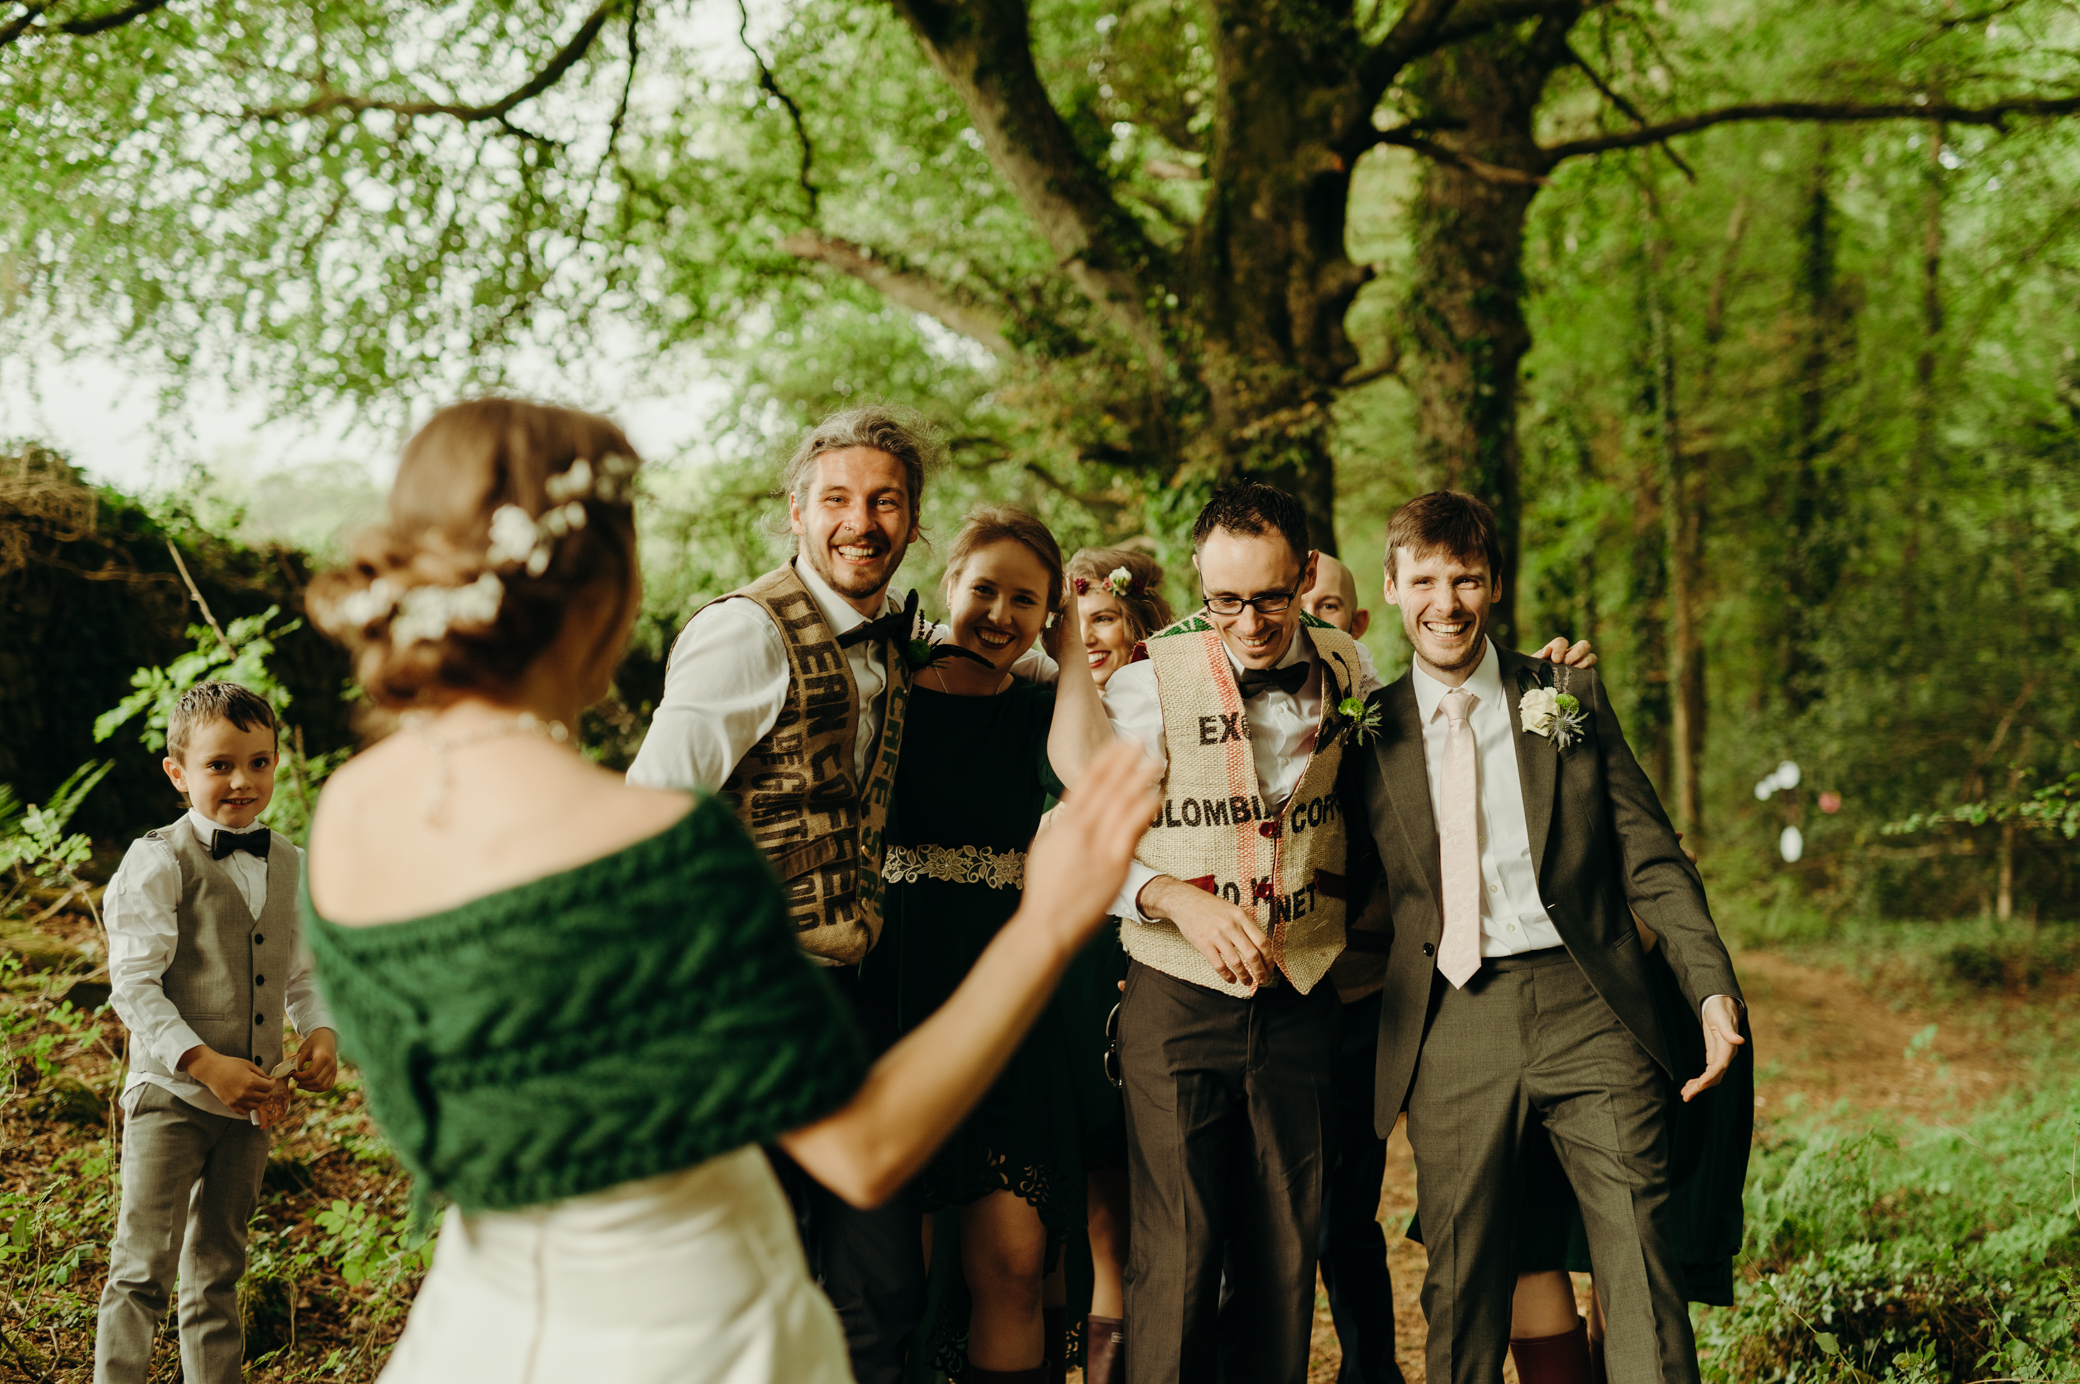 Alternative Wedding Ireland - Elopement photographer Ireland - Destination Photographer Europe-76.jpg